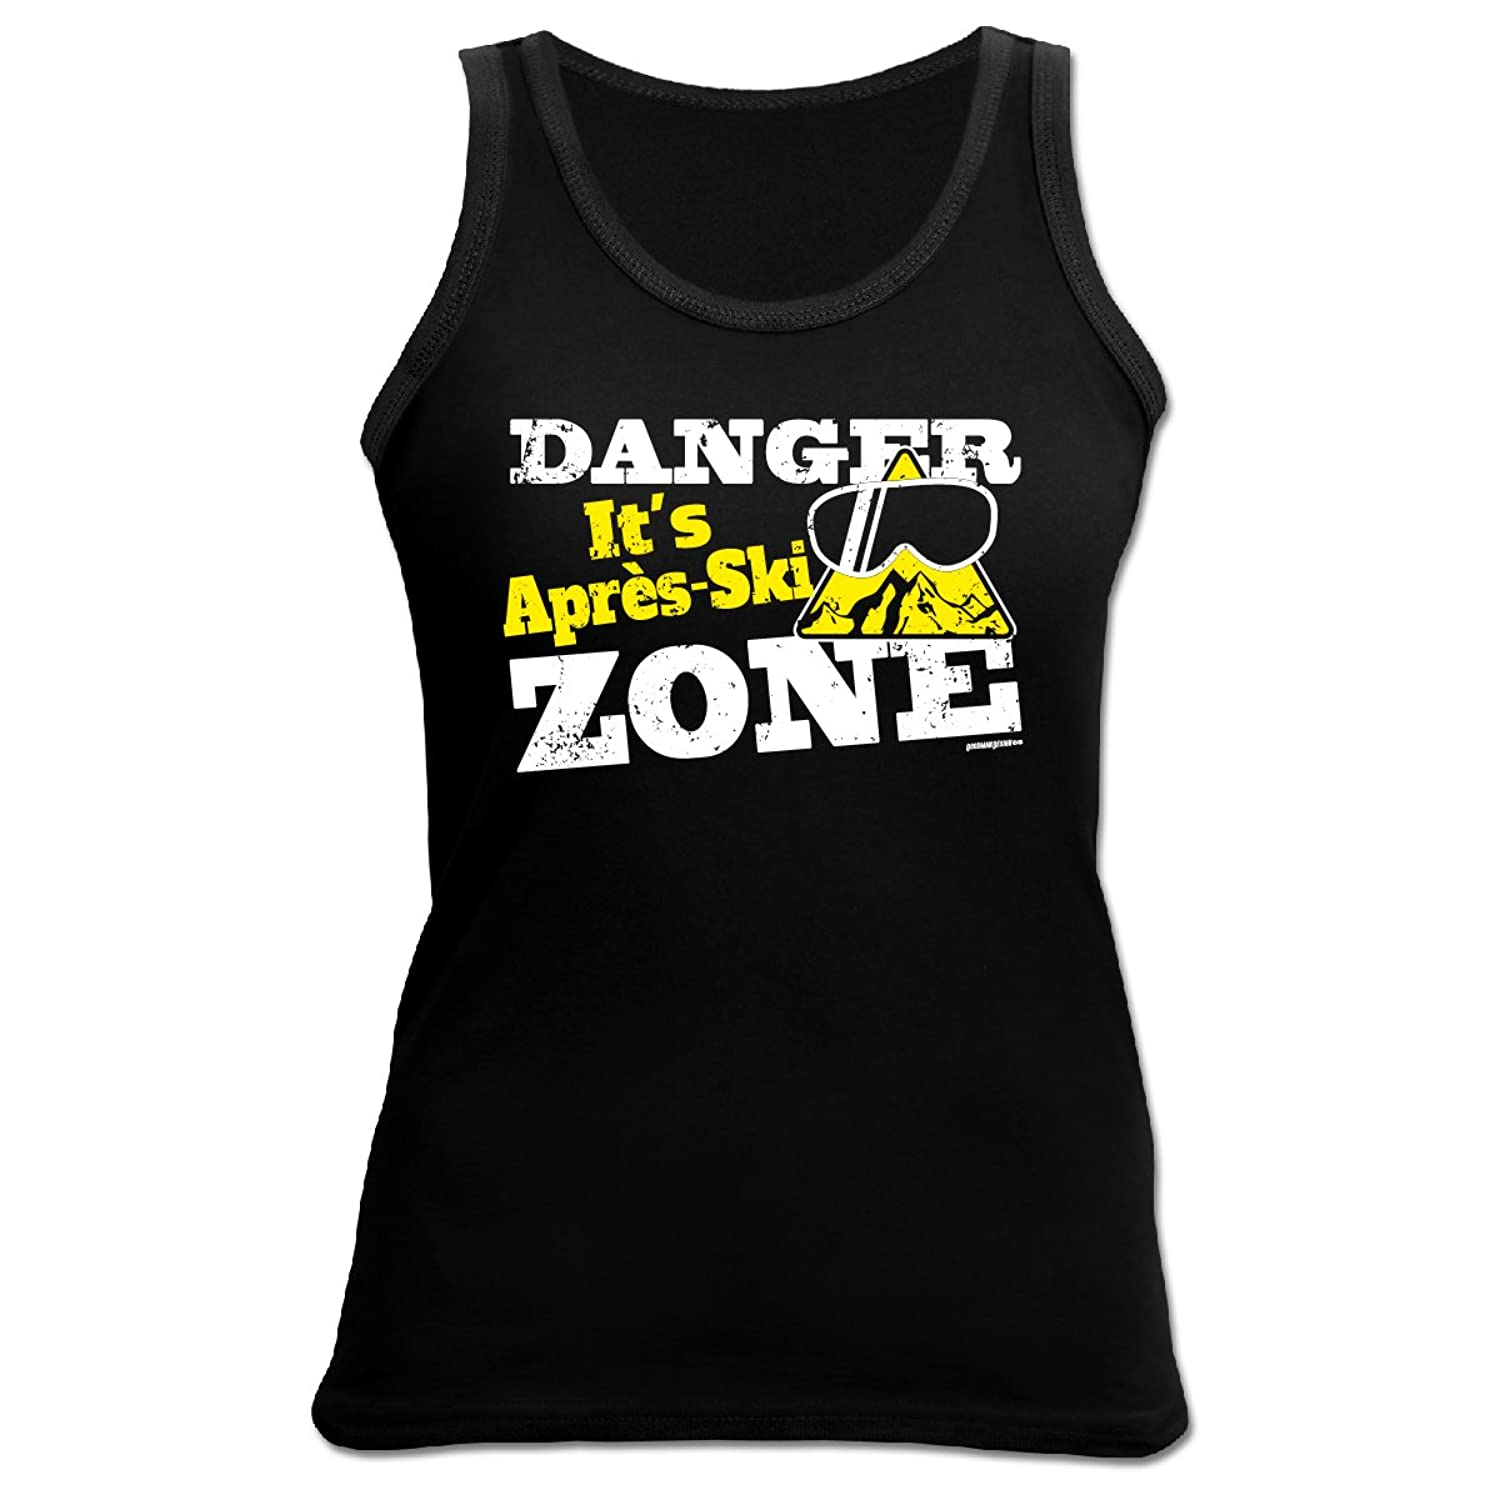 Cooles Damen Top für den Winter - Wintersport - Tank Top für Skihasen : Danger it´s Apres - Ski Zone -- Goodman Design